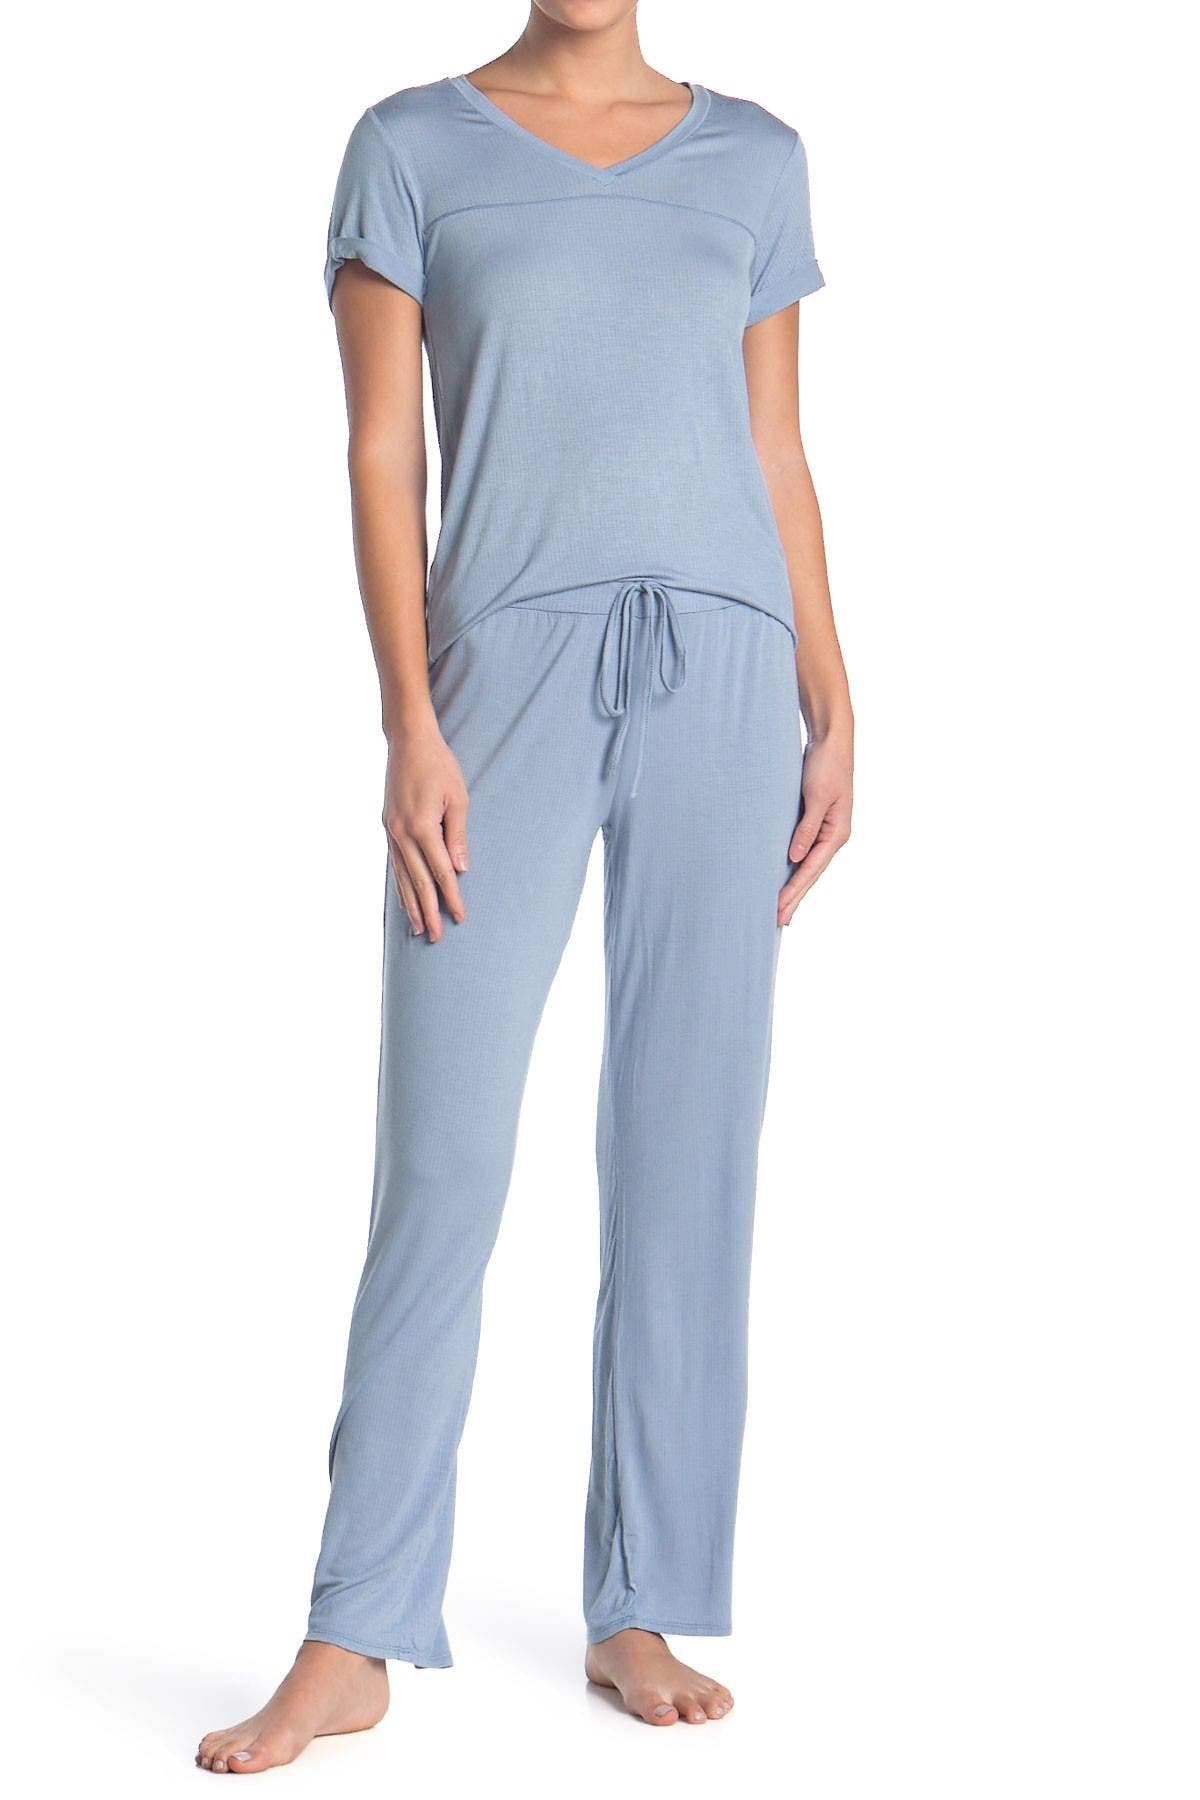 Image of Lucky Brand T-Shirt & Pants Pajama 2-Piece Set